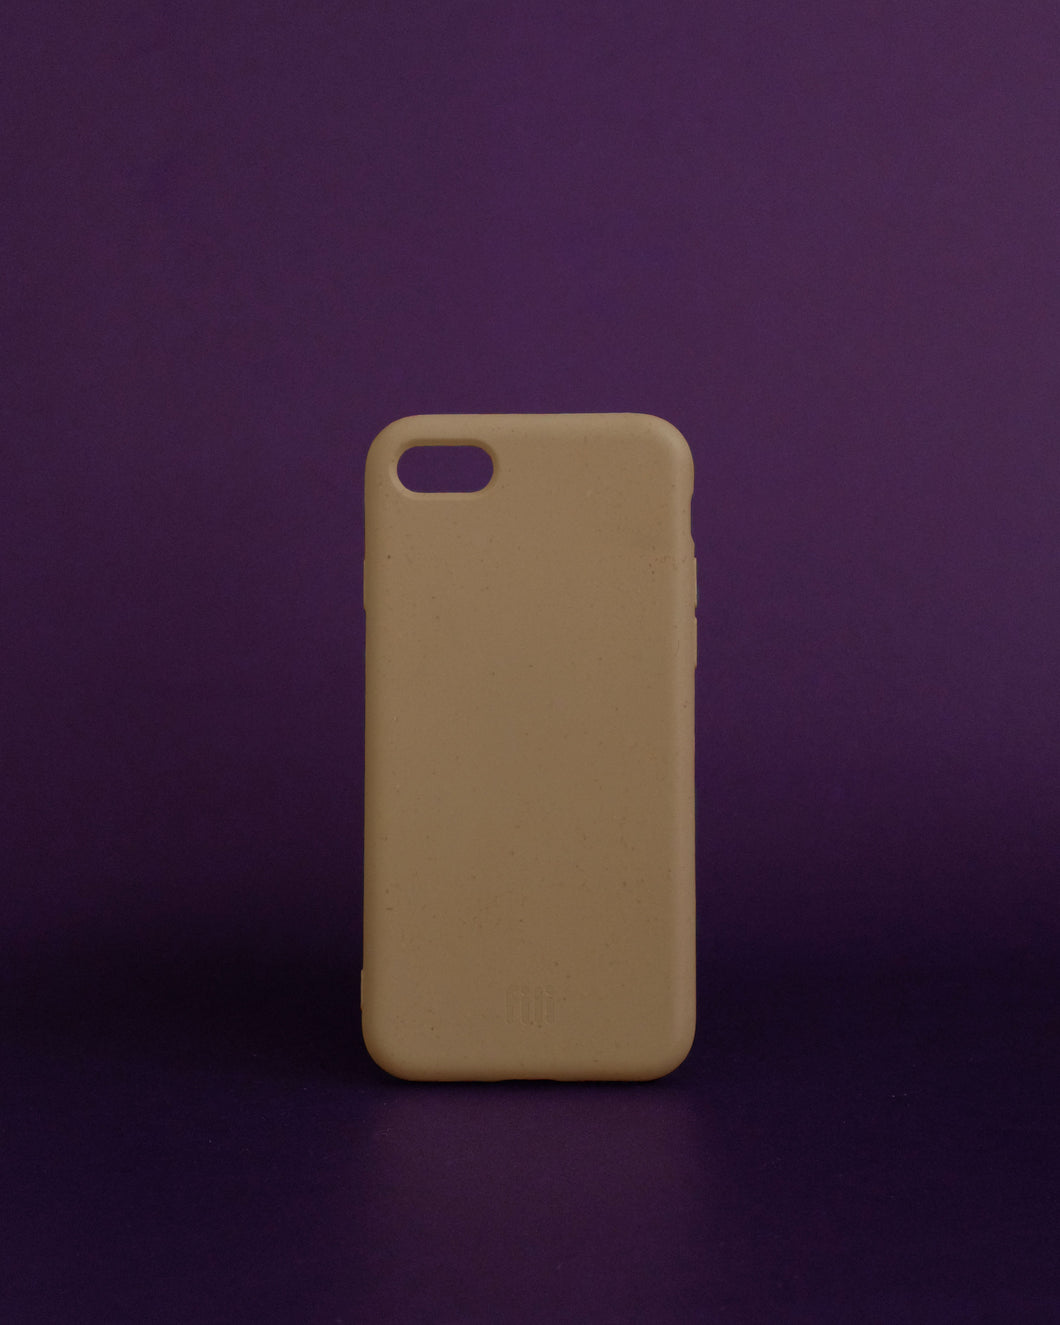 Plant-based Smooth iPhone Case - Nude - Loop.